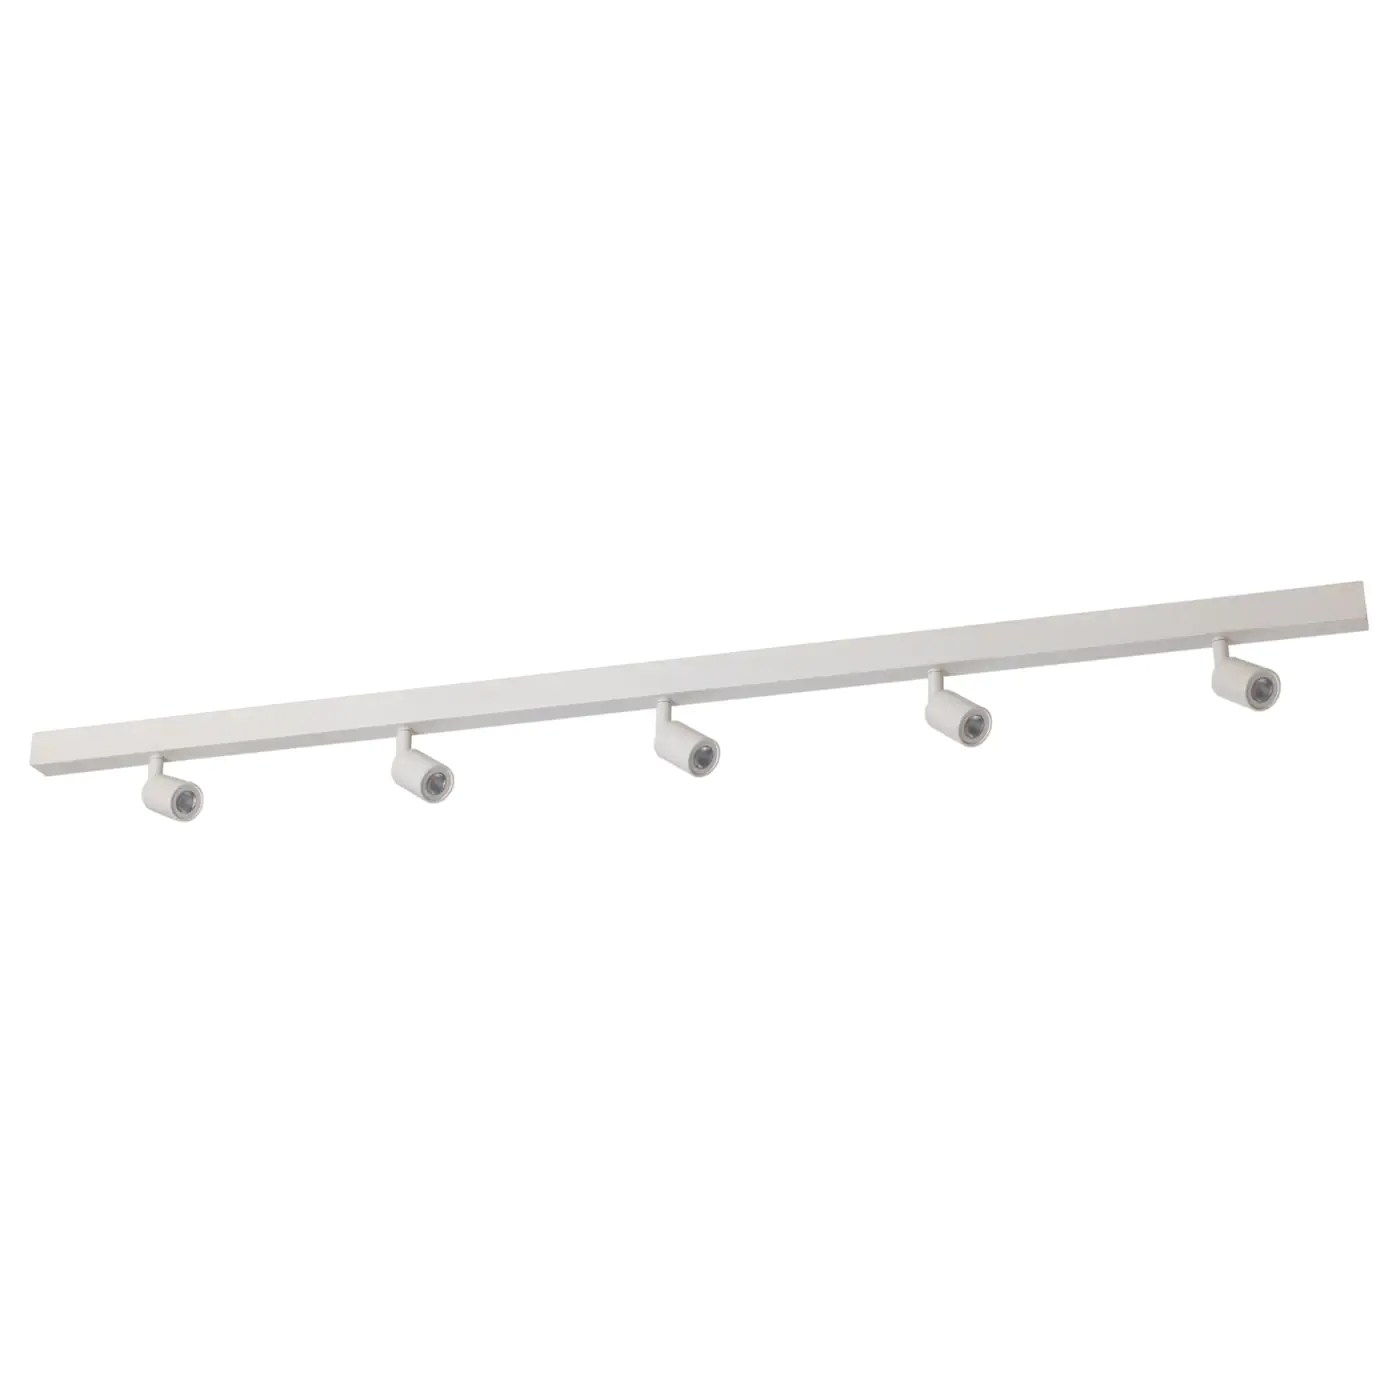 Philips Cucina Verlichting BÄve Led Ceiling Track 5 Spots White Ikea